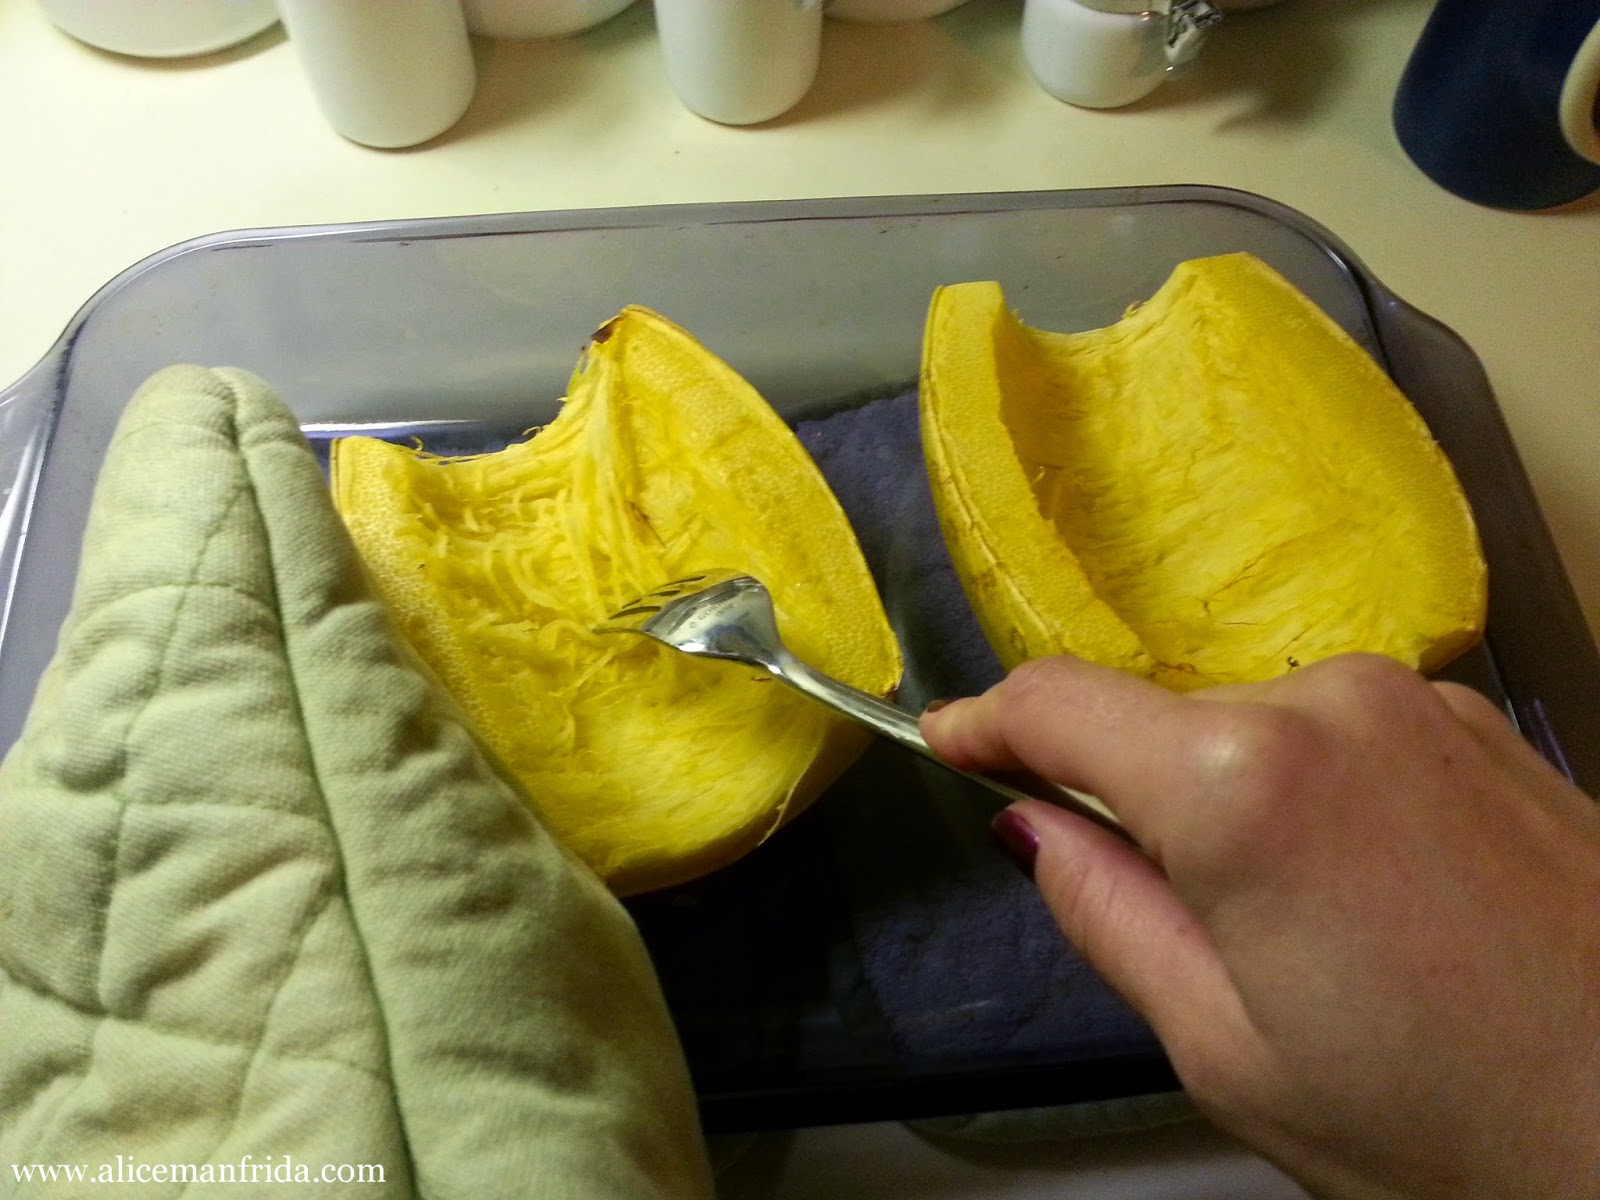 Use a fork to scrape the spaghetti squash lengthwise.